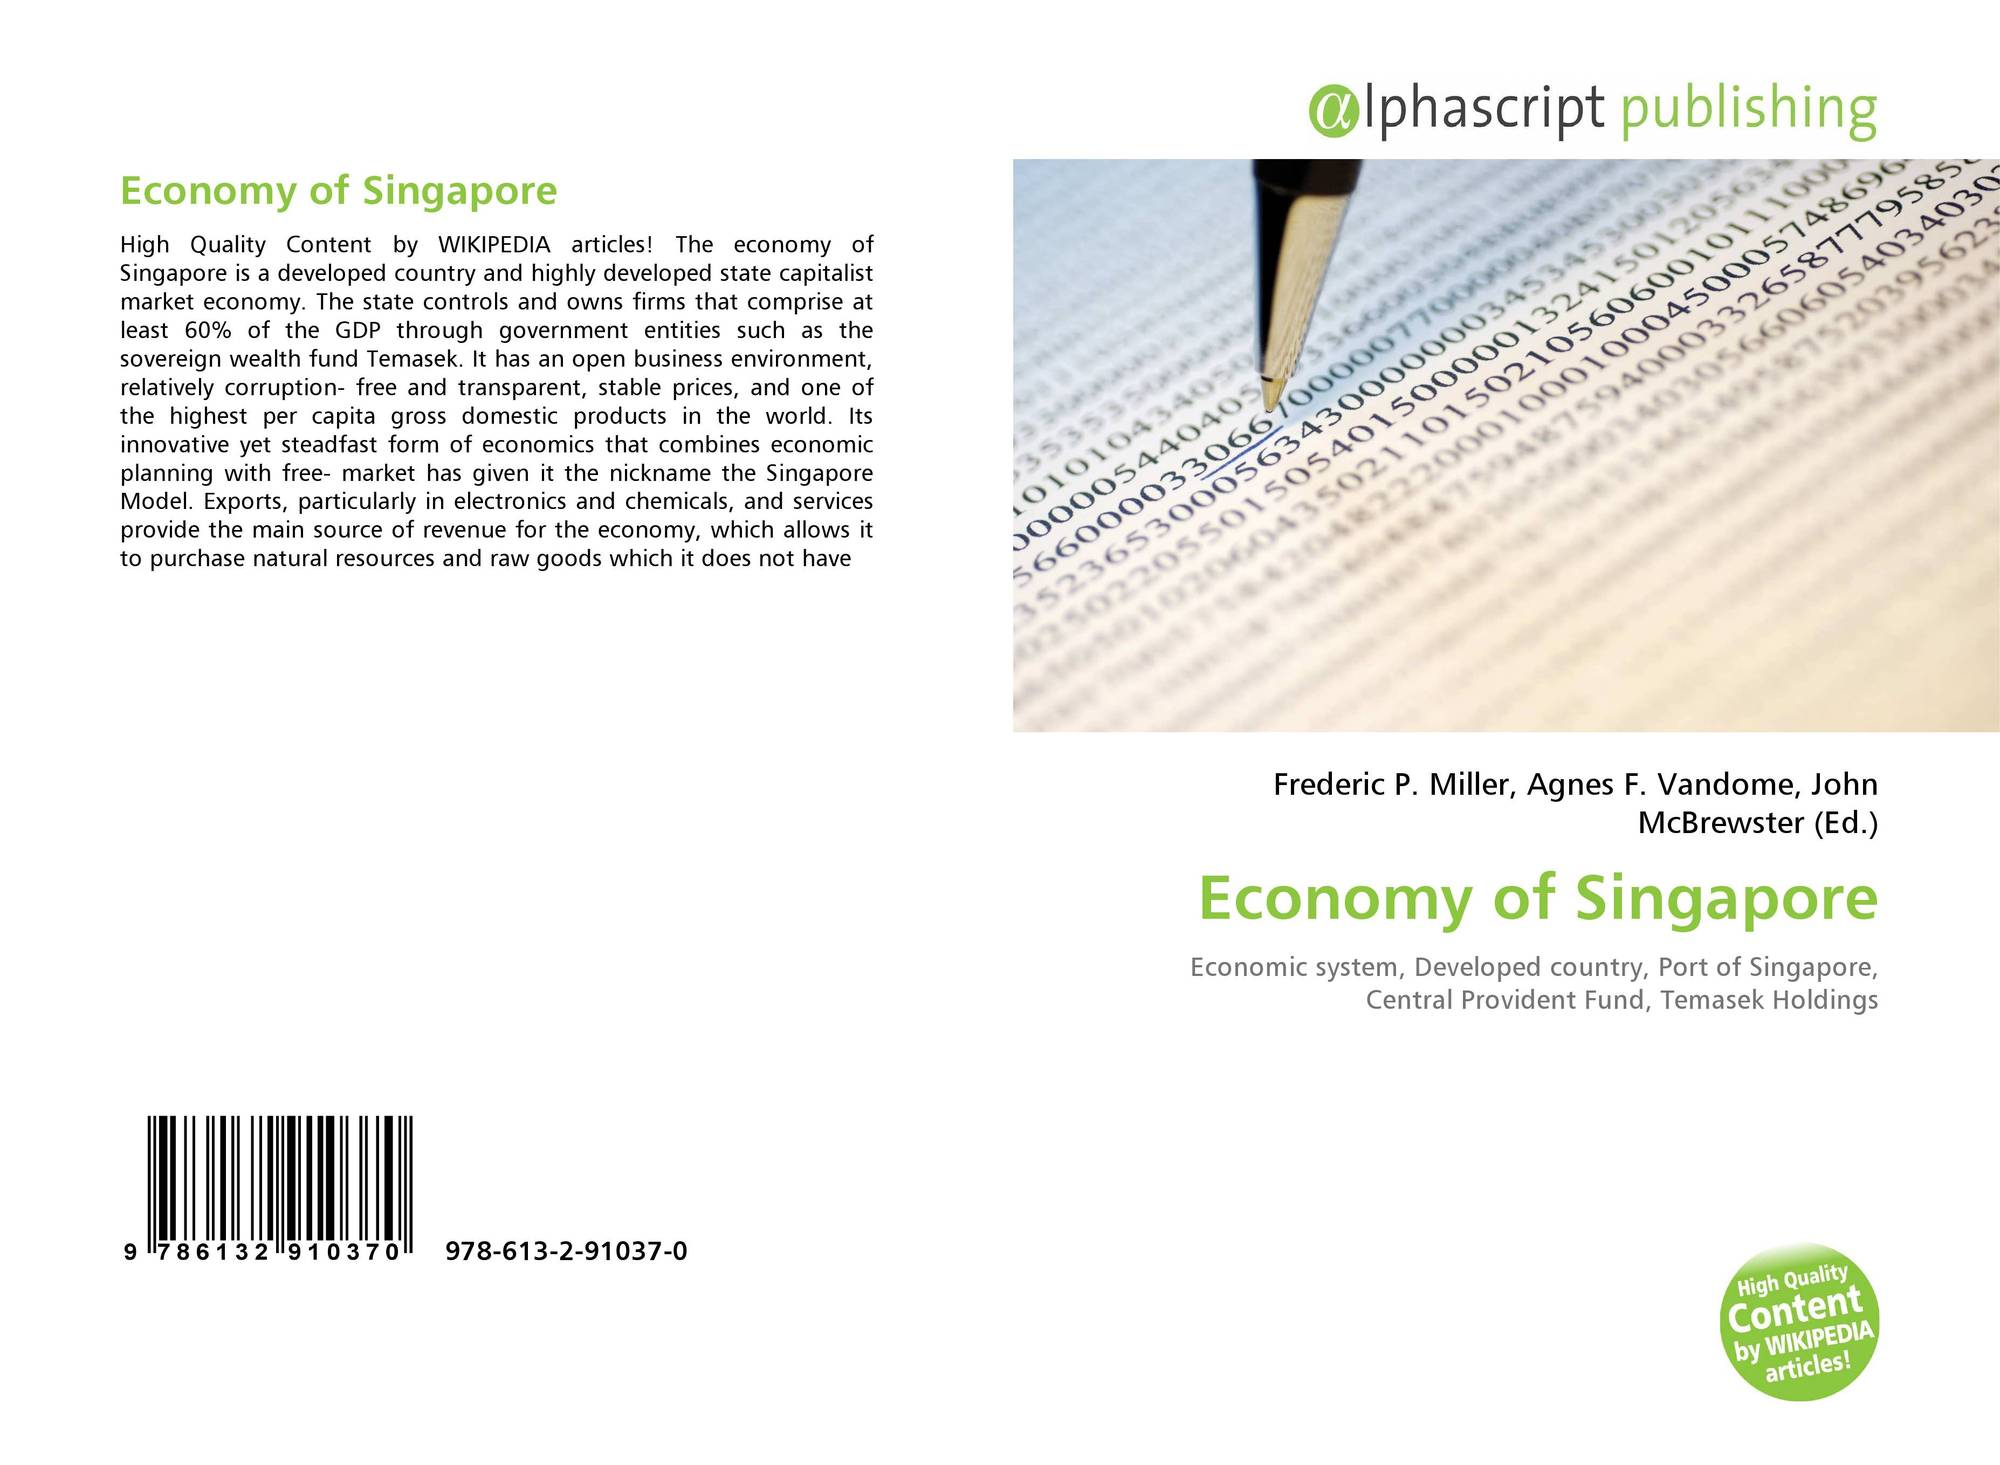 an introduction to the history of the singapores economy The national museum of singapore is the nation's oldest museum that seeks to inspire with stories of singapore and the world its history dates back to 1887 when it.